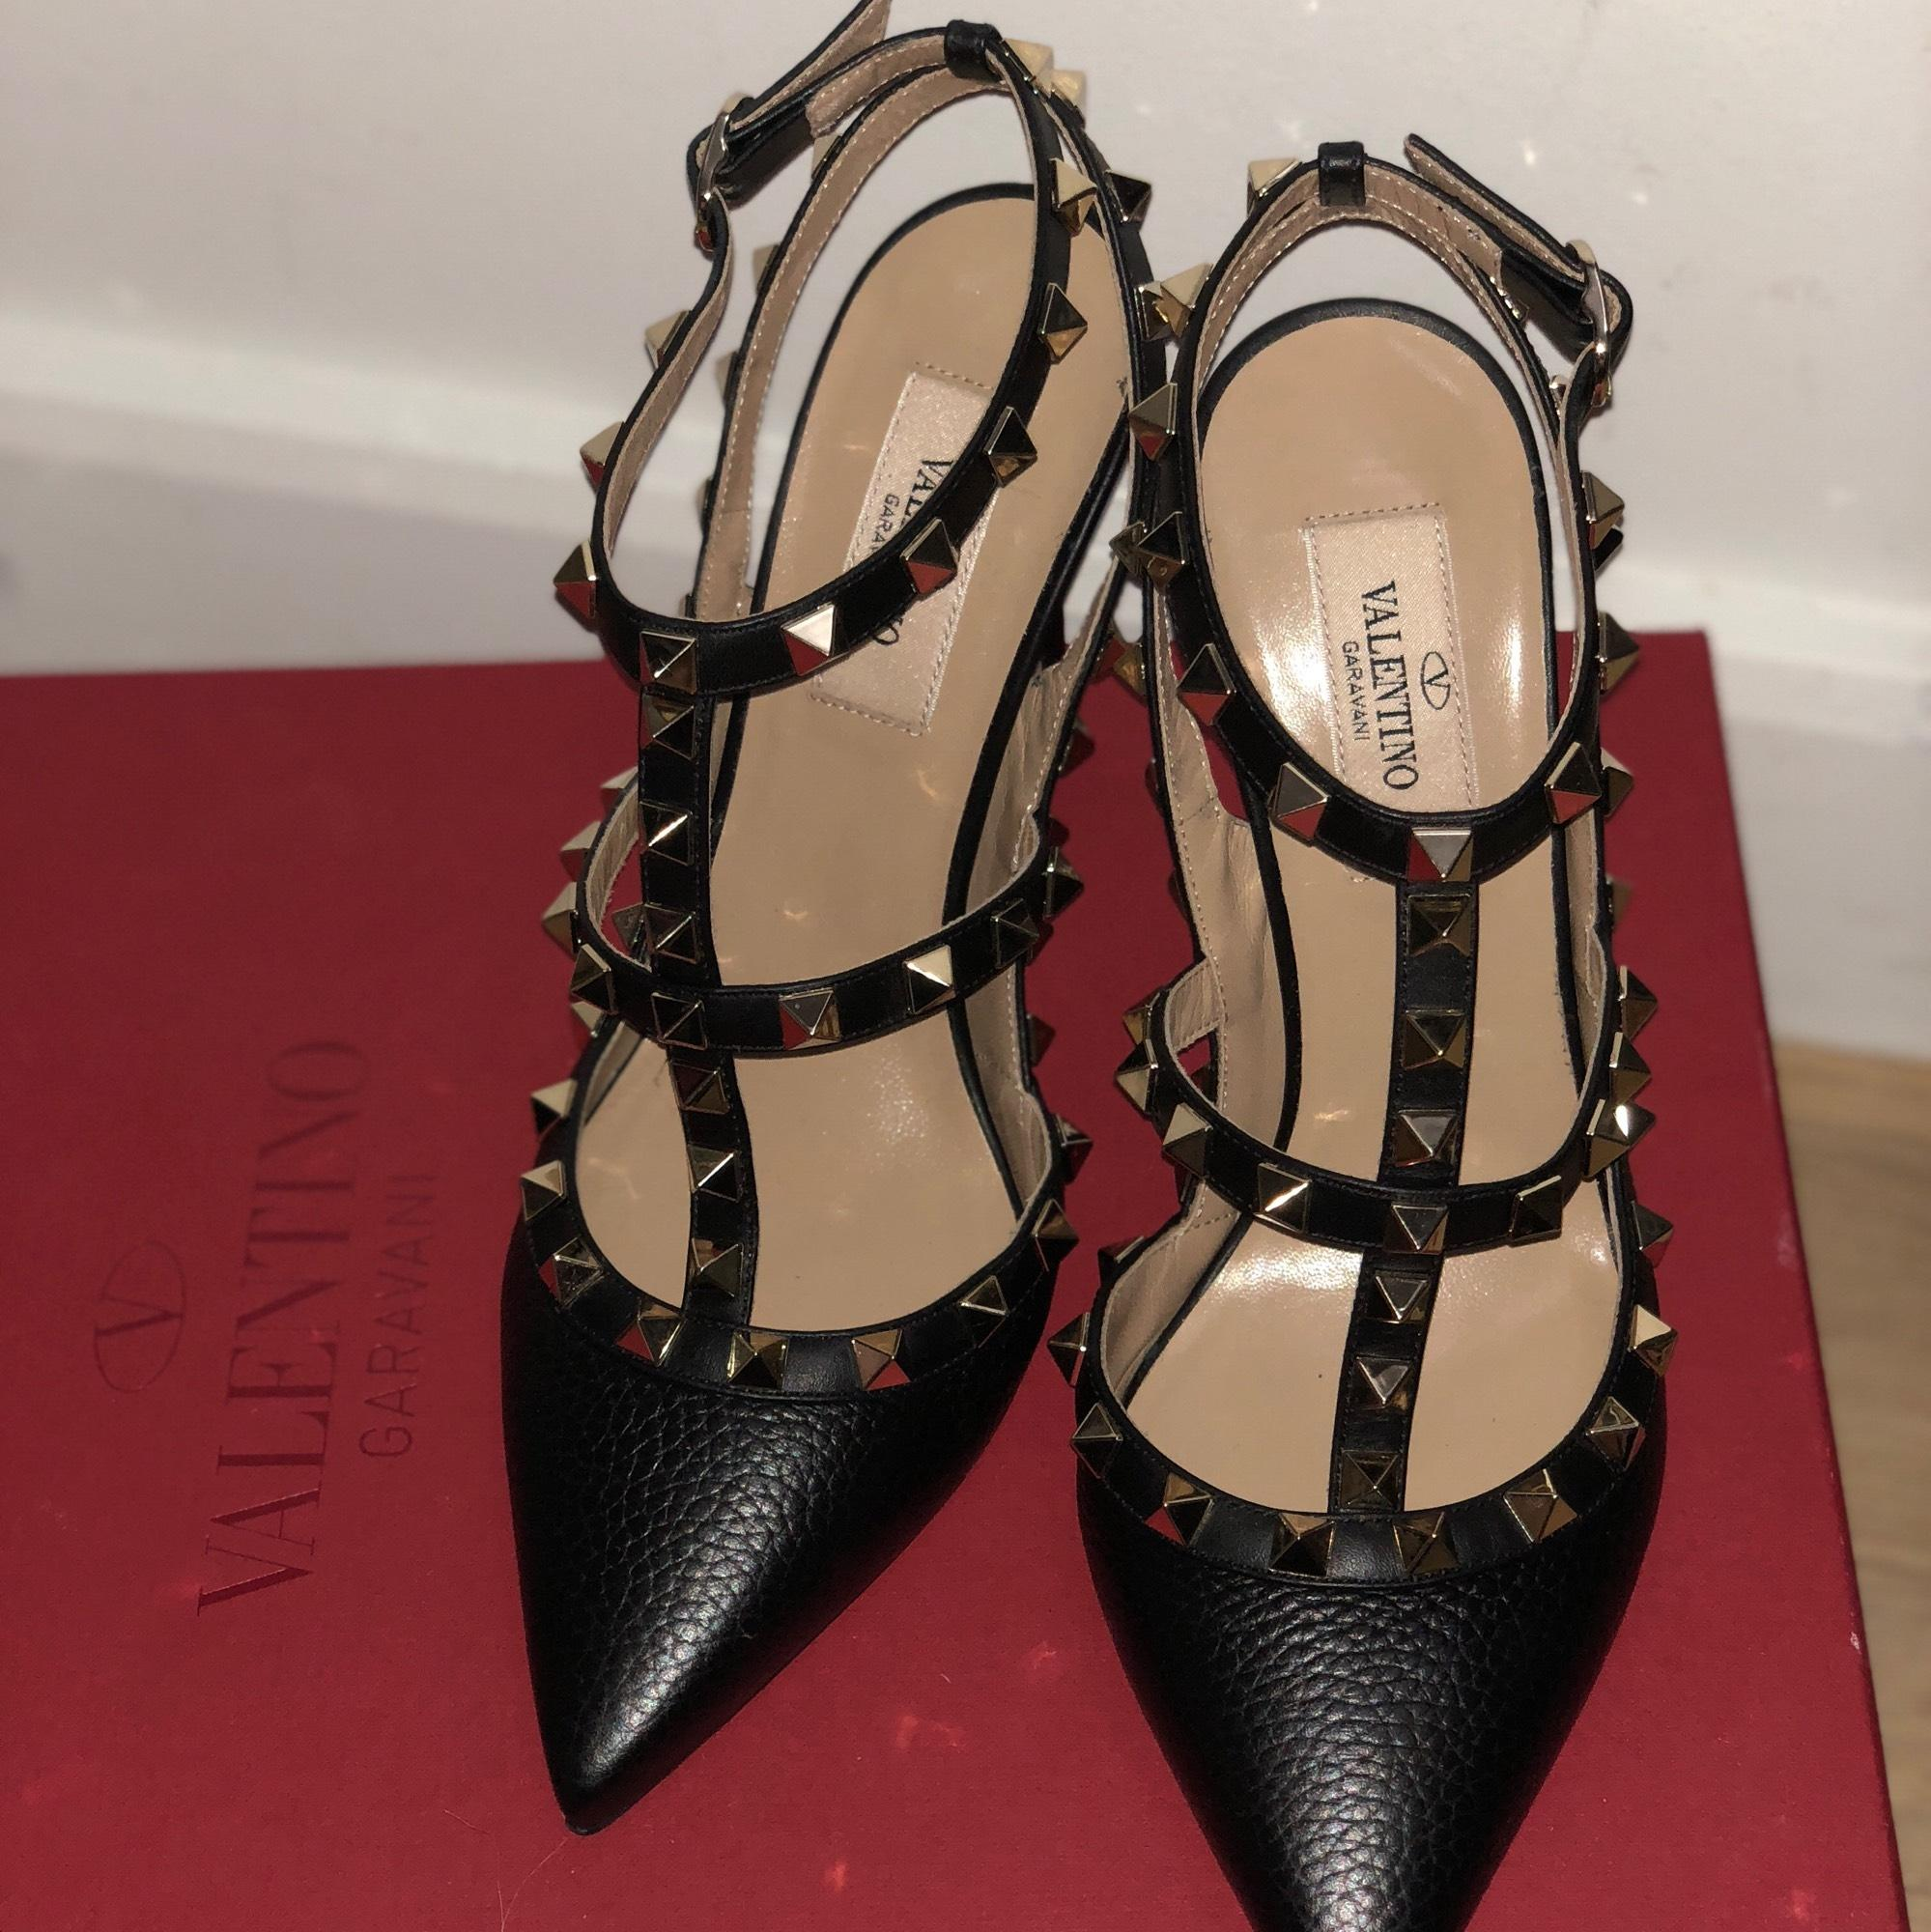 8a0e03c22f3b6 US 7 Valentino Black Garavani Rockstud Leather Pumps Size Size Size EU 37  (Approx. US 7